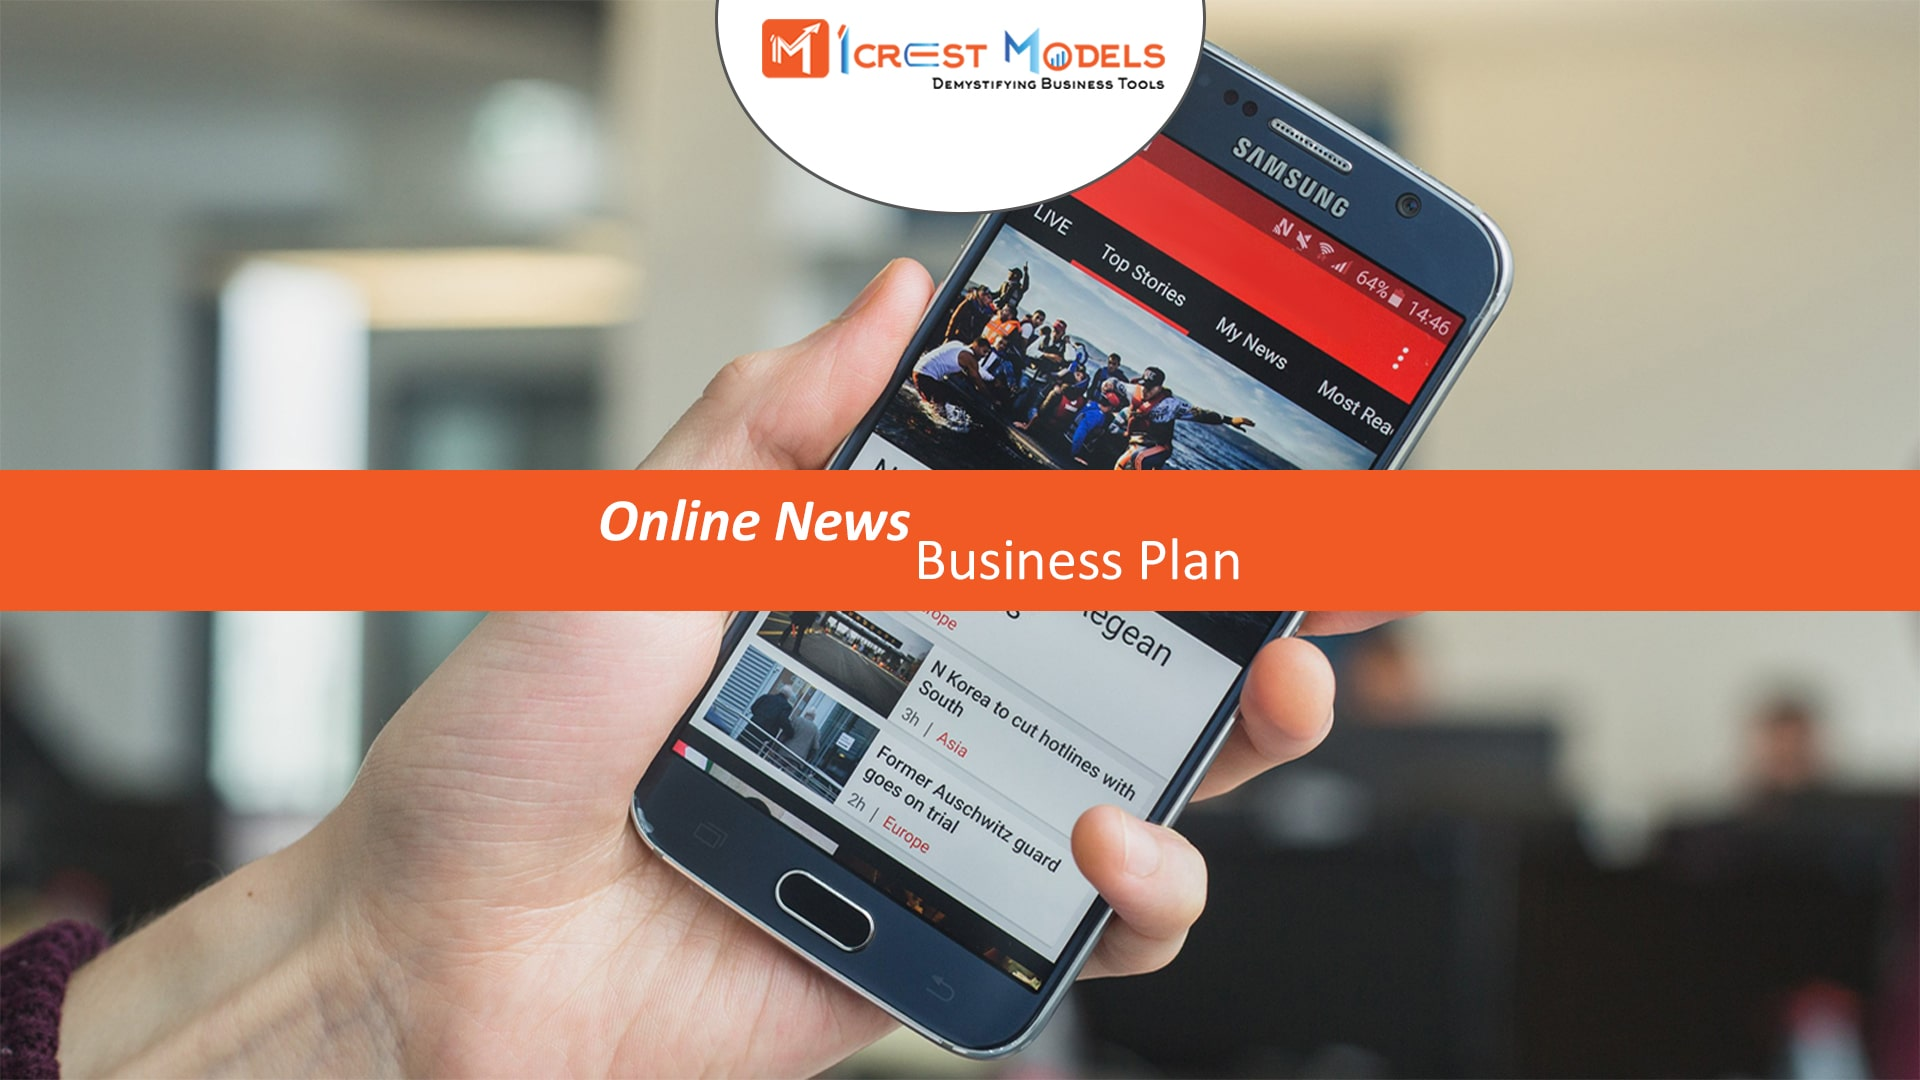 Business Plan of a Short Local News App